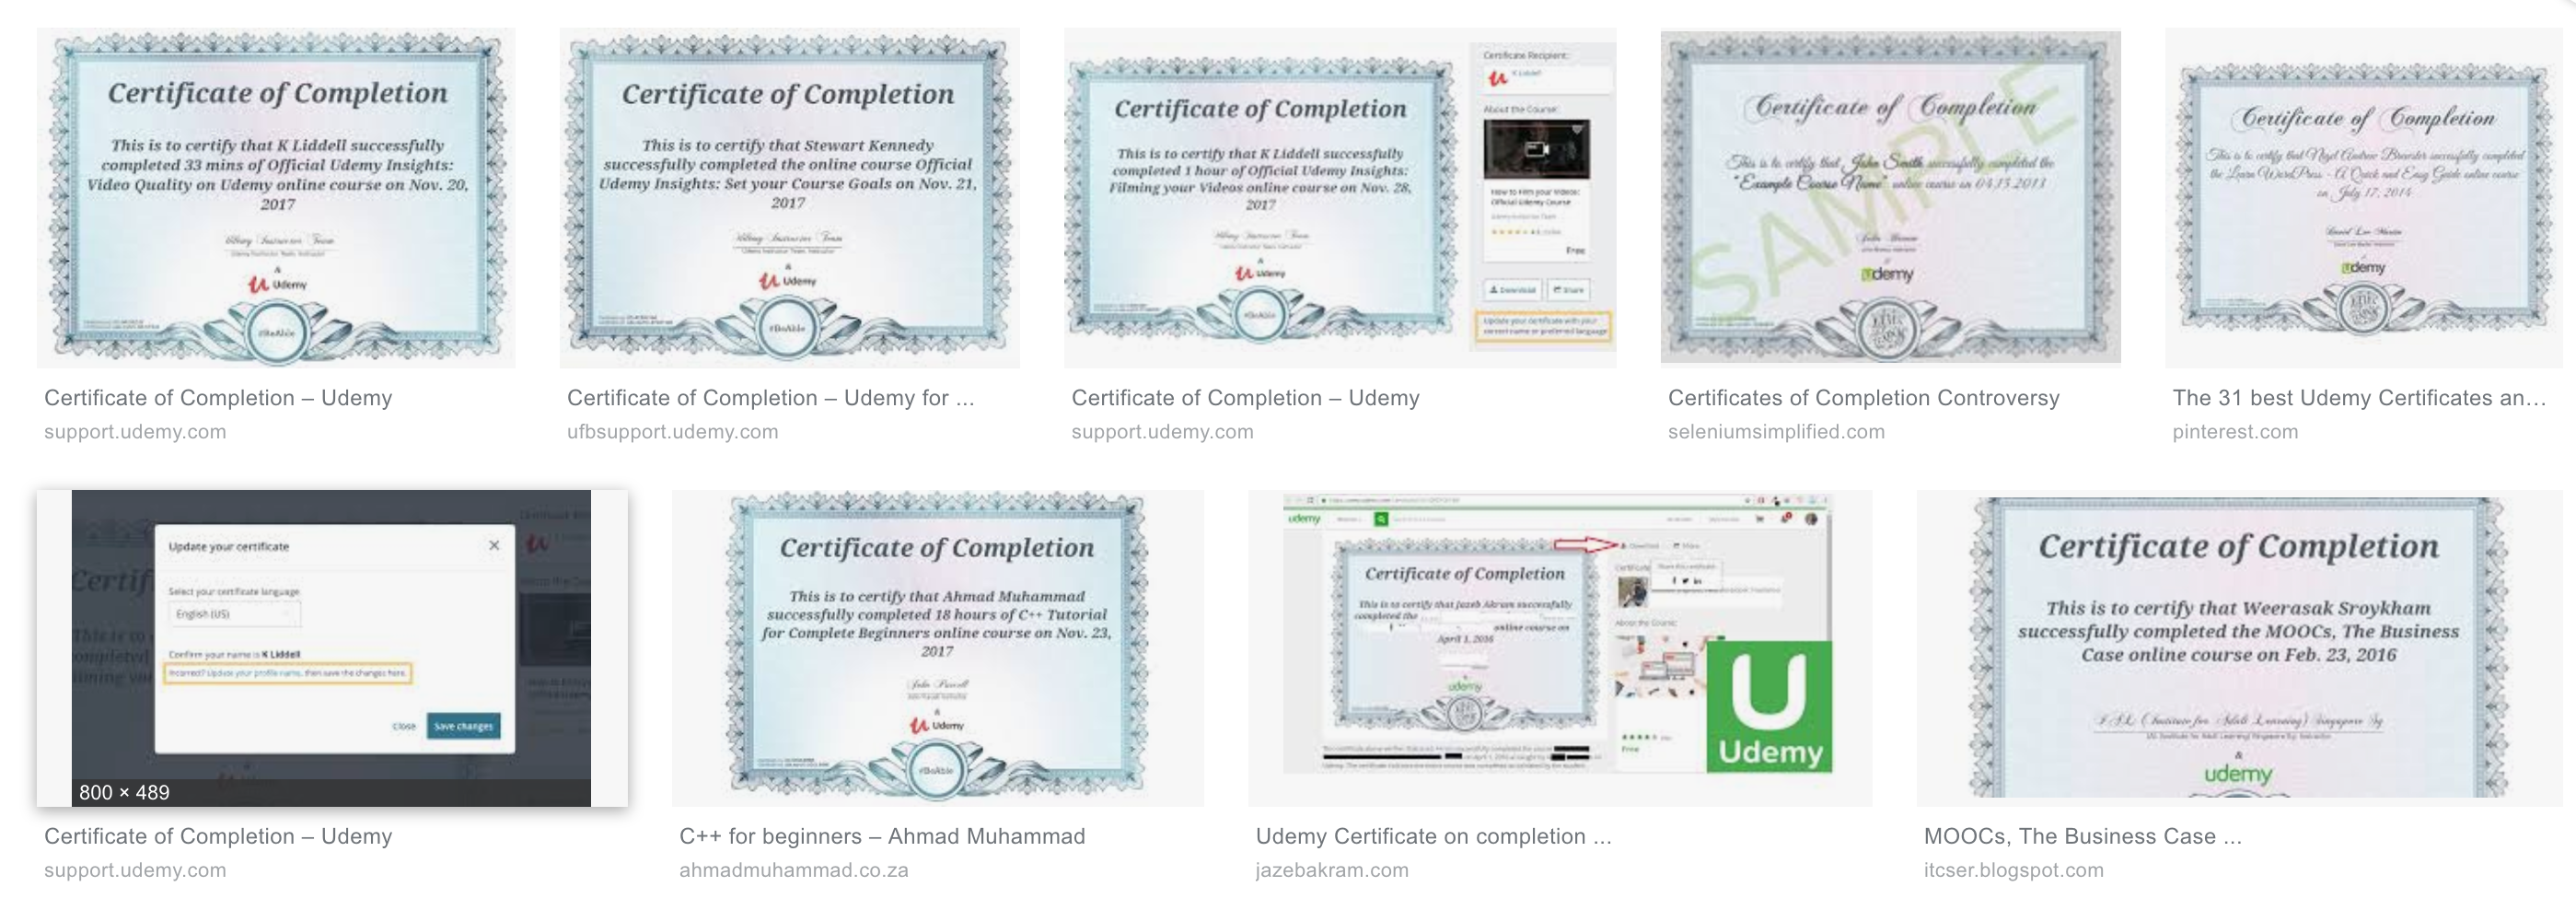 How to get a Udemy certificate for free without enrolling